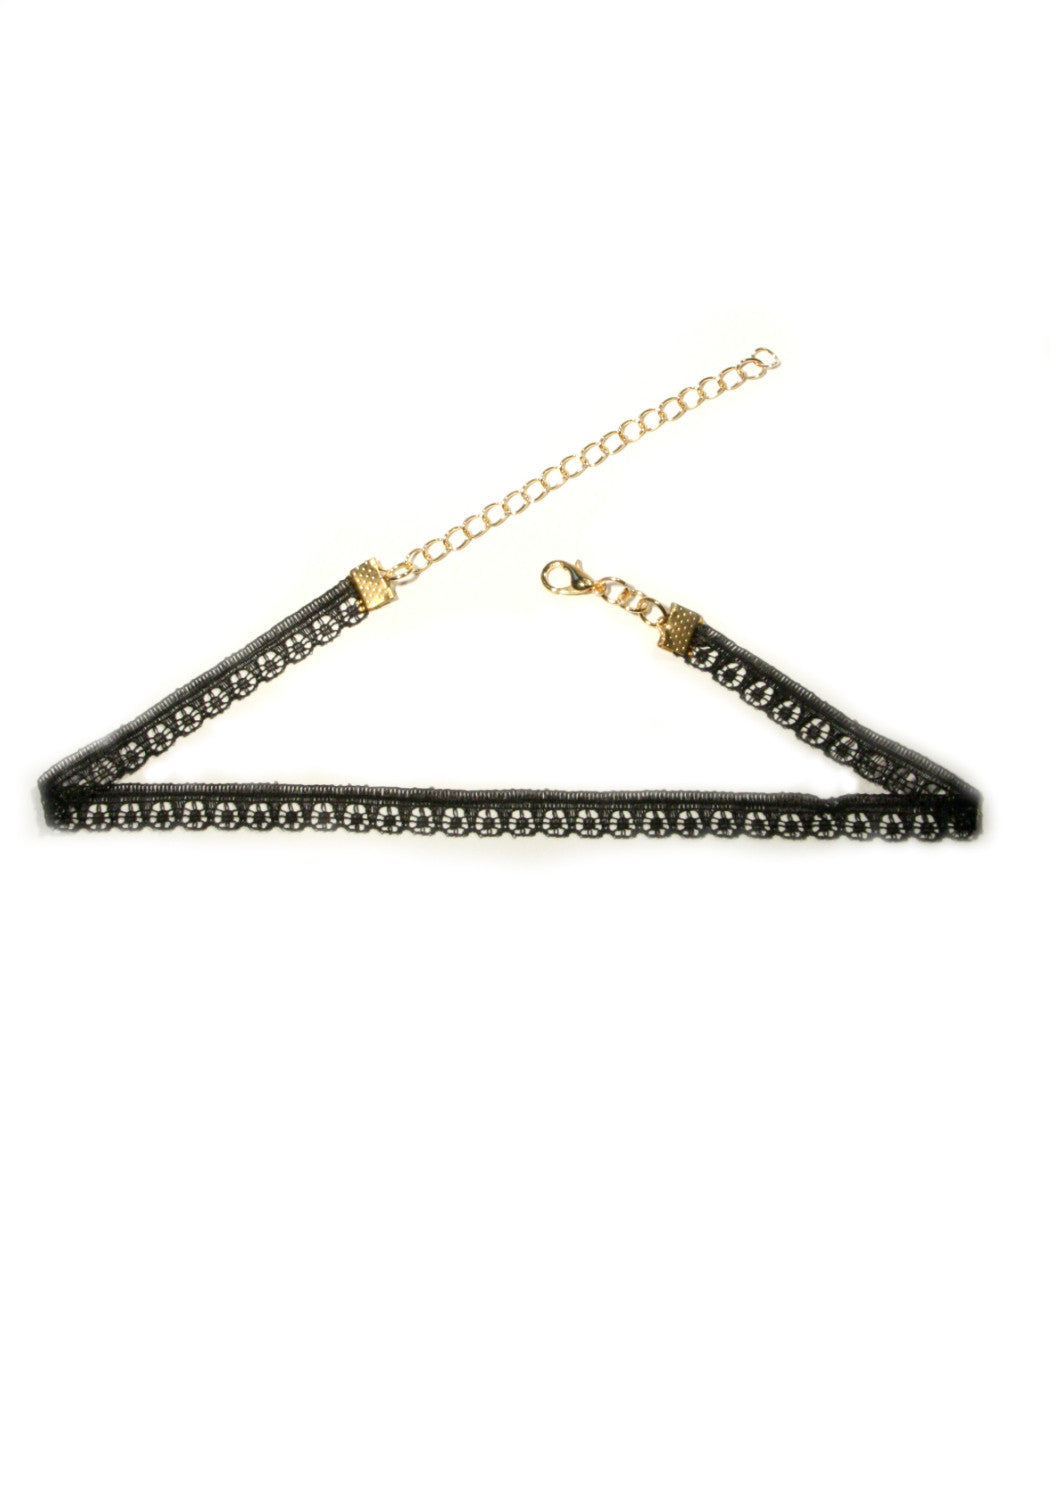 Thin Black Lace Choker, $6 | Gold Necklace | Light Years Jewelry